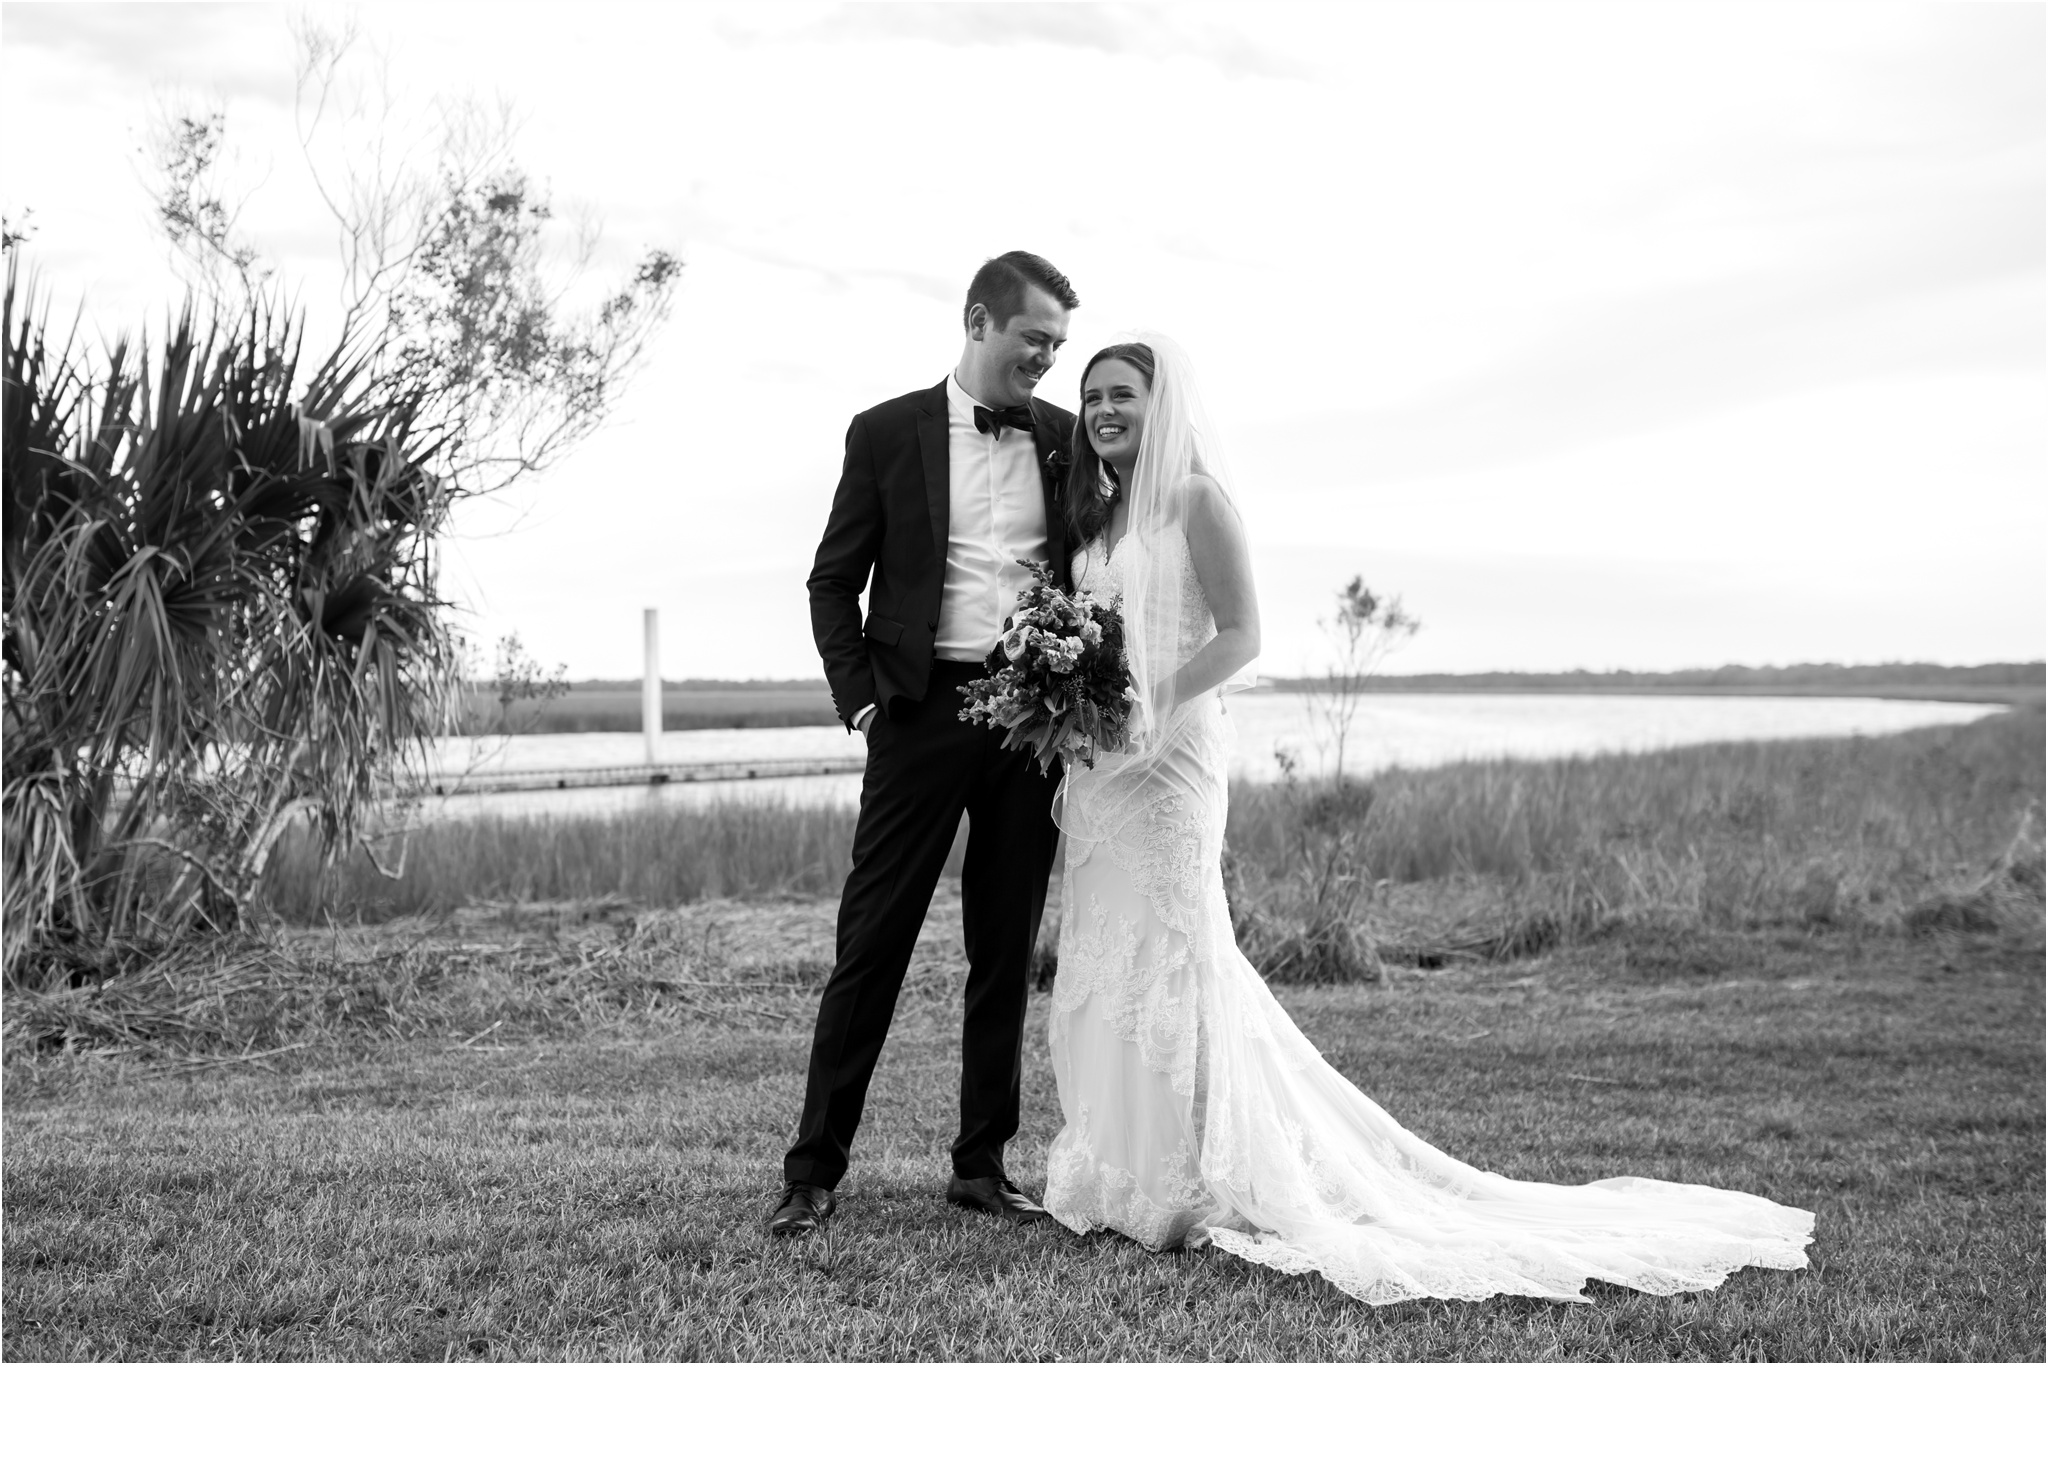 Rainey_Gregg_Photography_St._Simons_Island_Georgia_California_Wedding_Portrait_Photography_0870.jpg